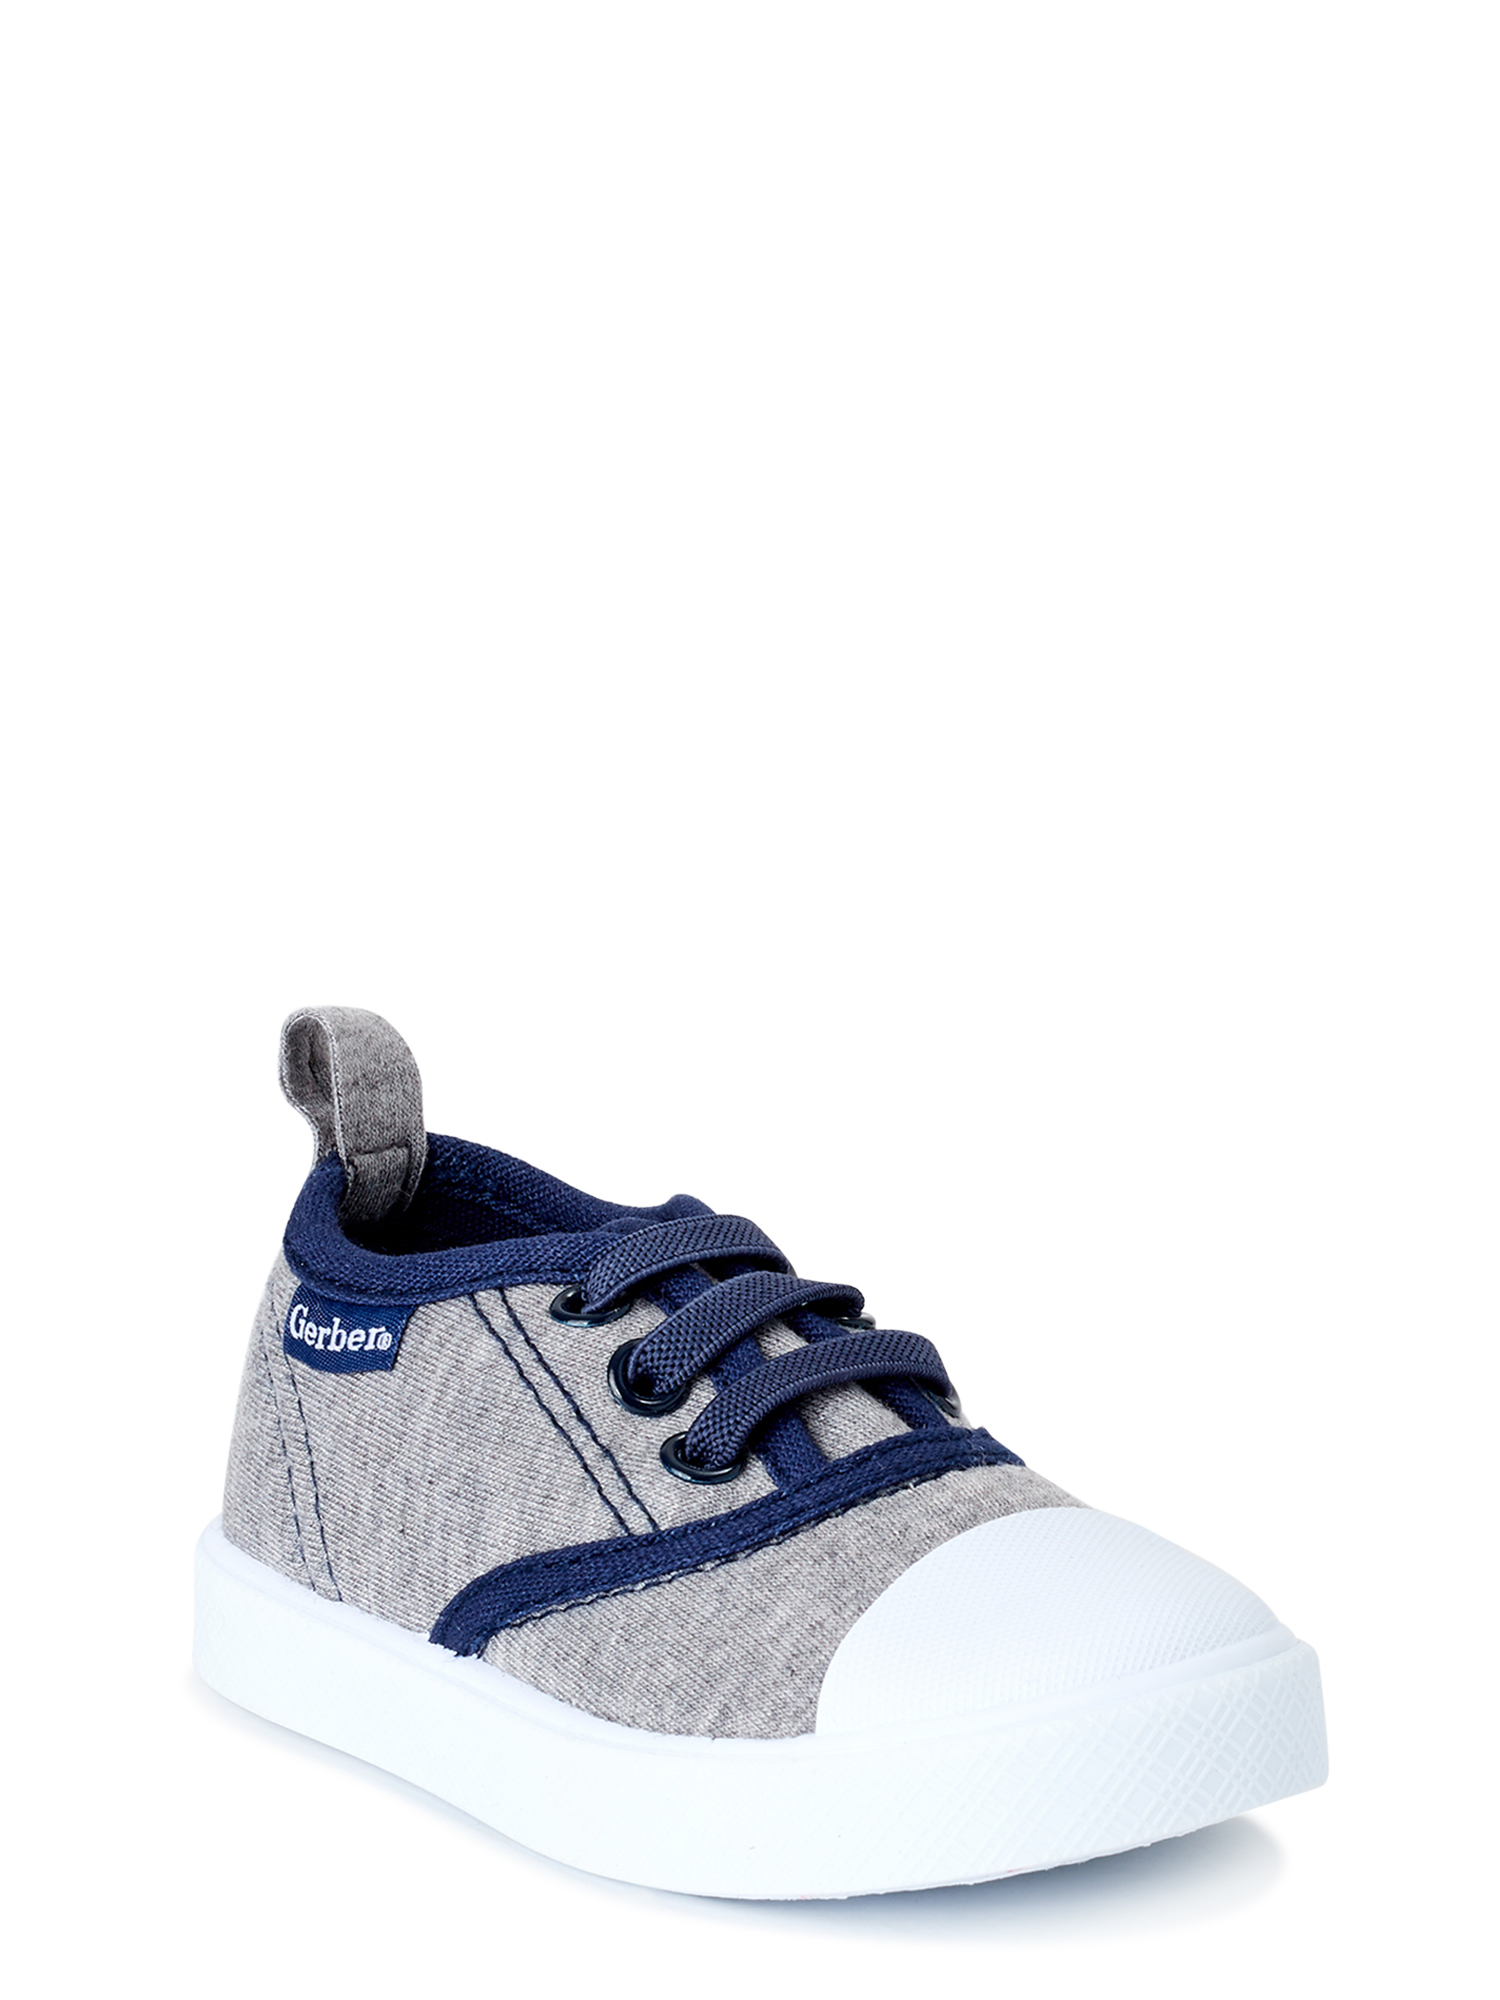 Gerber Toddler Boys Shoes at Walmart $3.75 (reg $20)